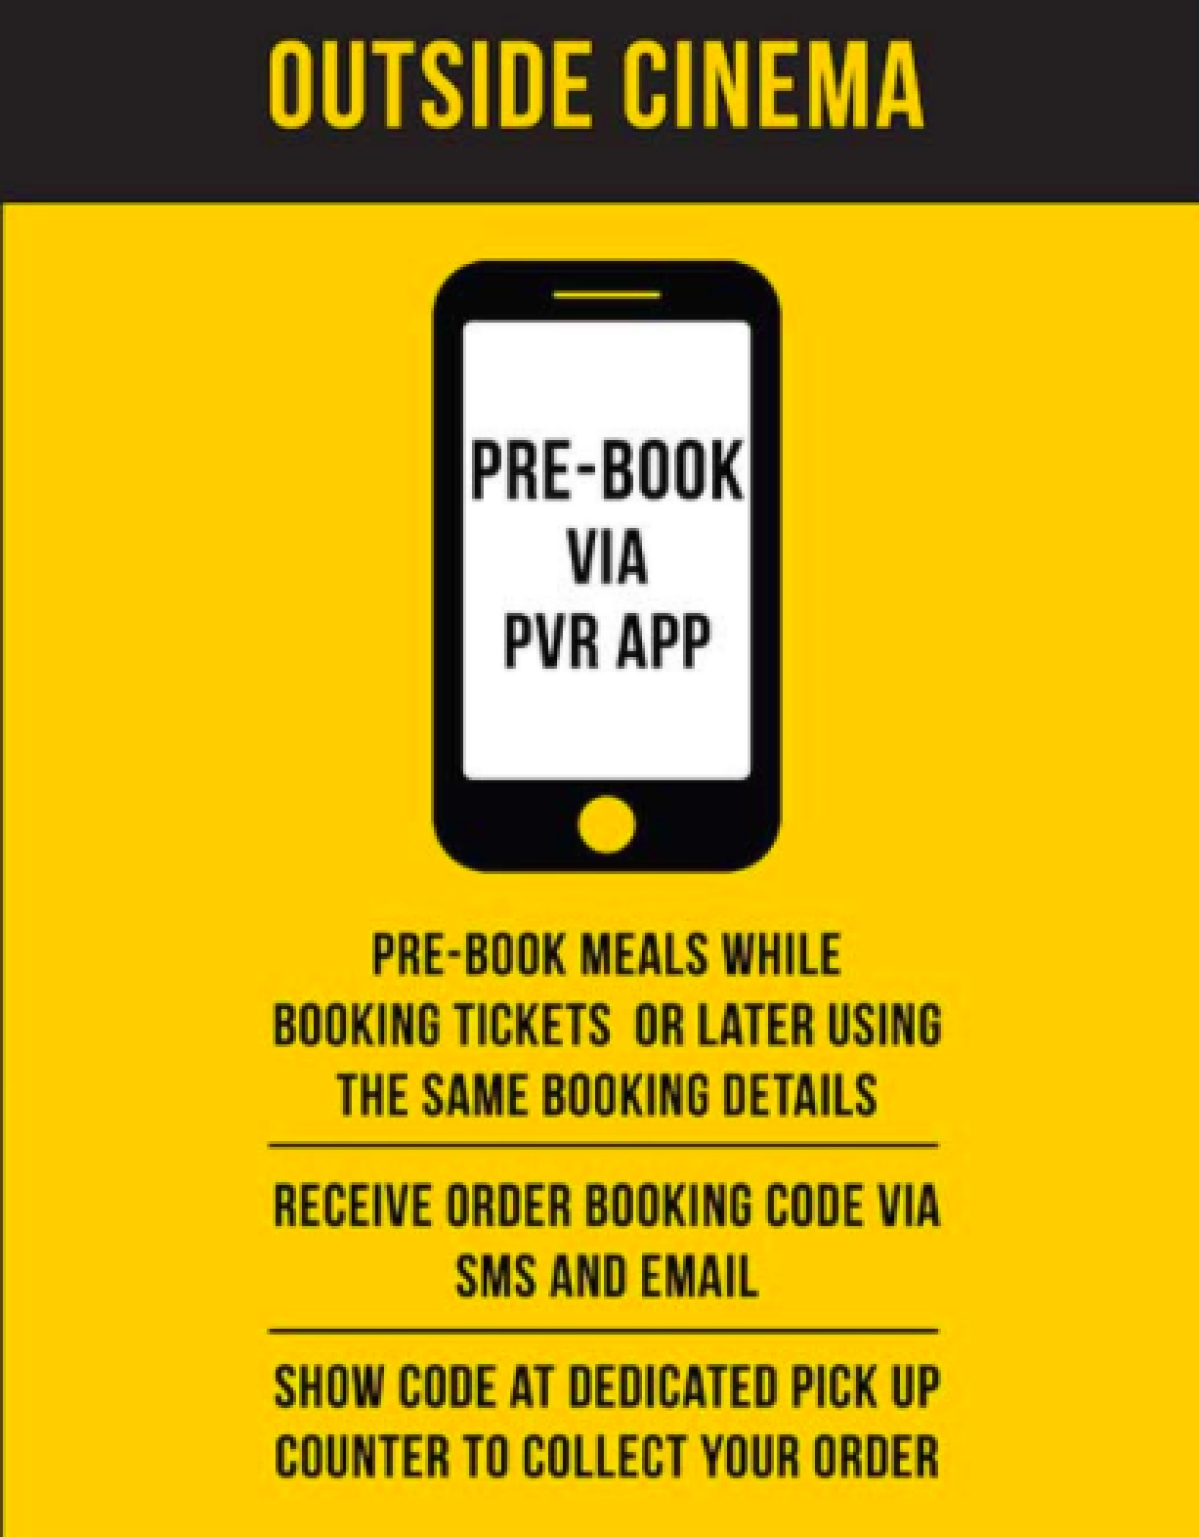 PVR pushes for contactless snack ordering in mailer campaign